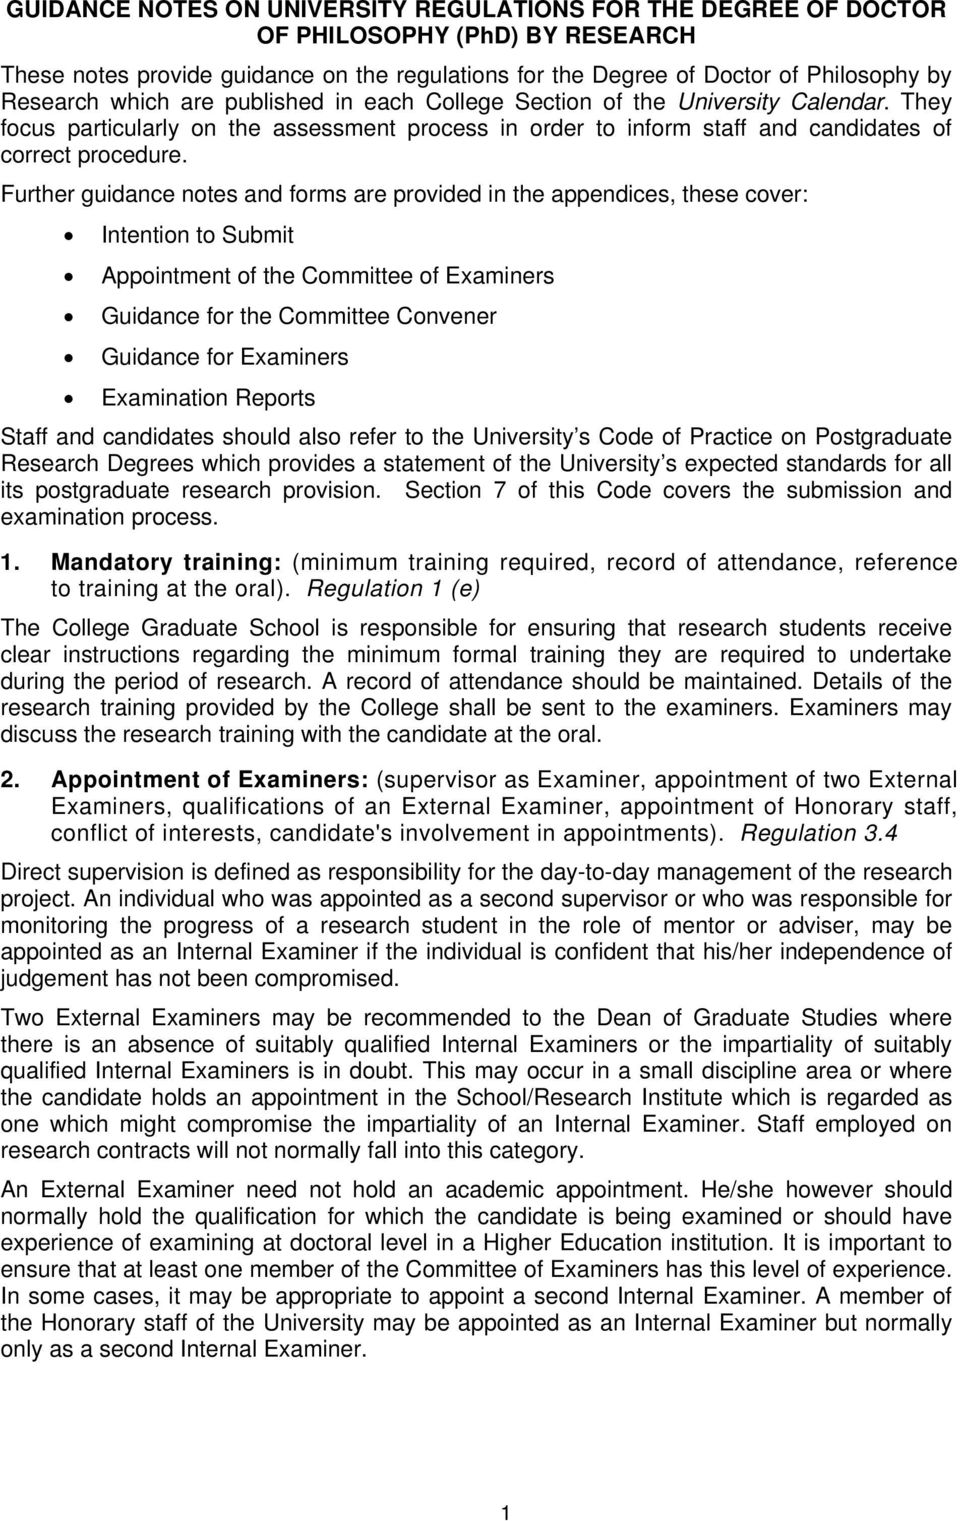 Further guidance notes and forms are provided in the appendices, these cover: Intention to Submit Appointment of the Committee of Examiners Guidance for the Committee Convener Guidance for Examiners